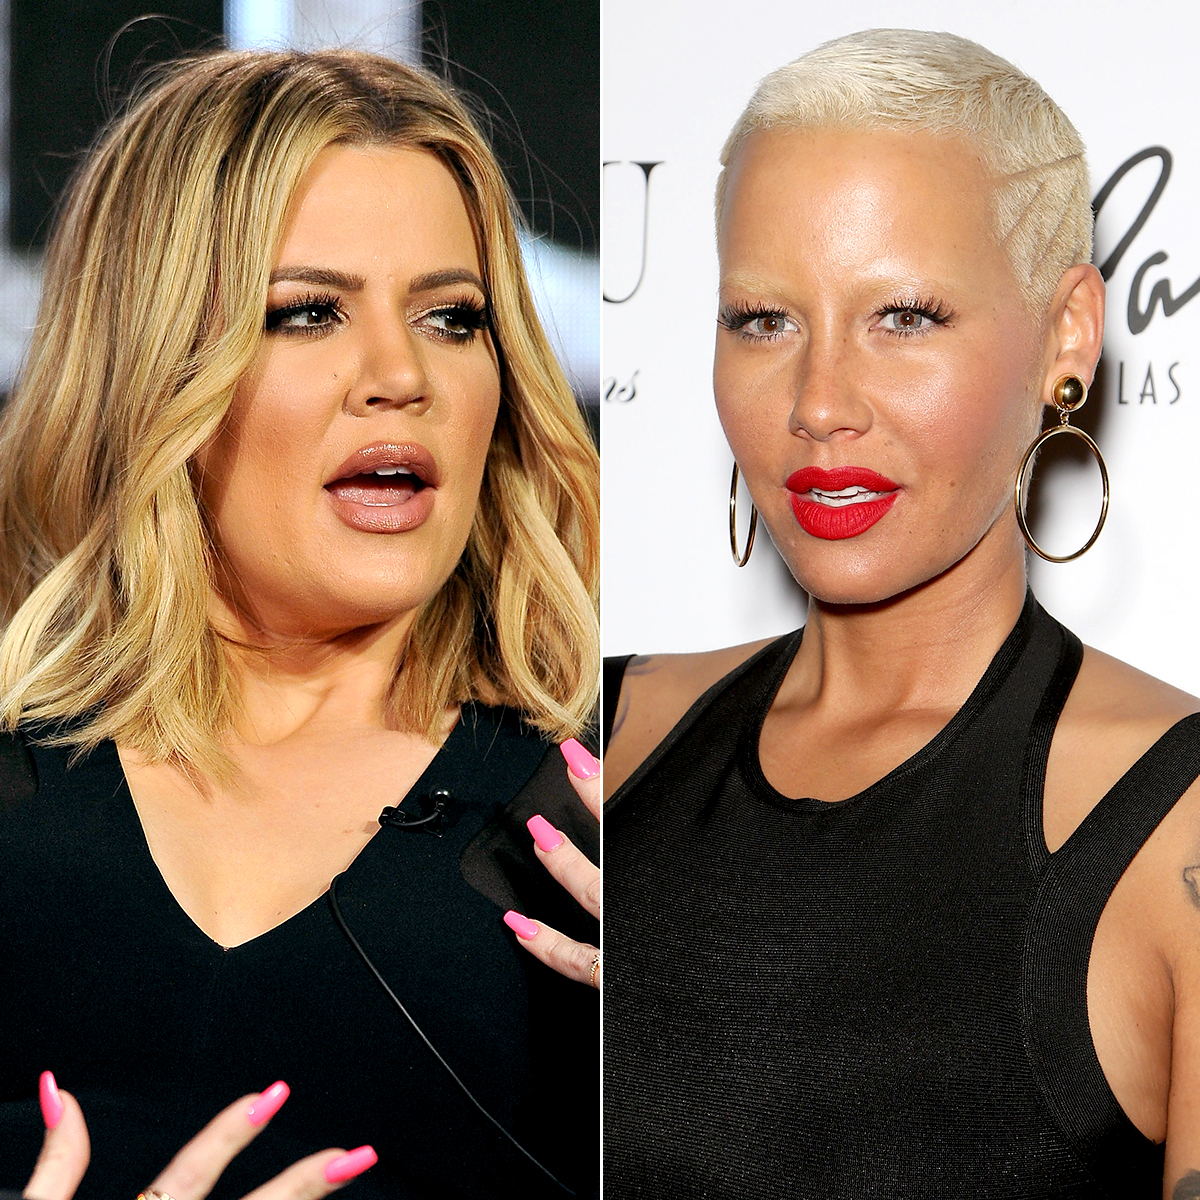 Khloé Kardashian and Amber Rose